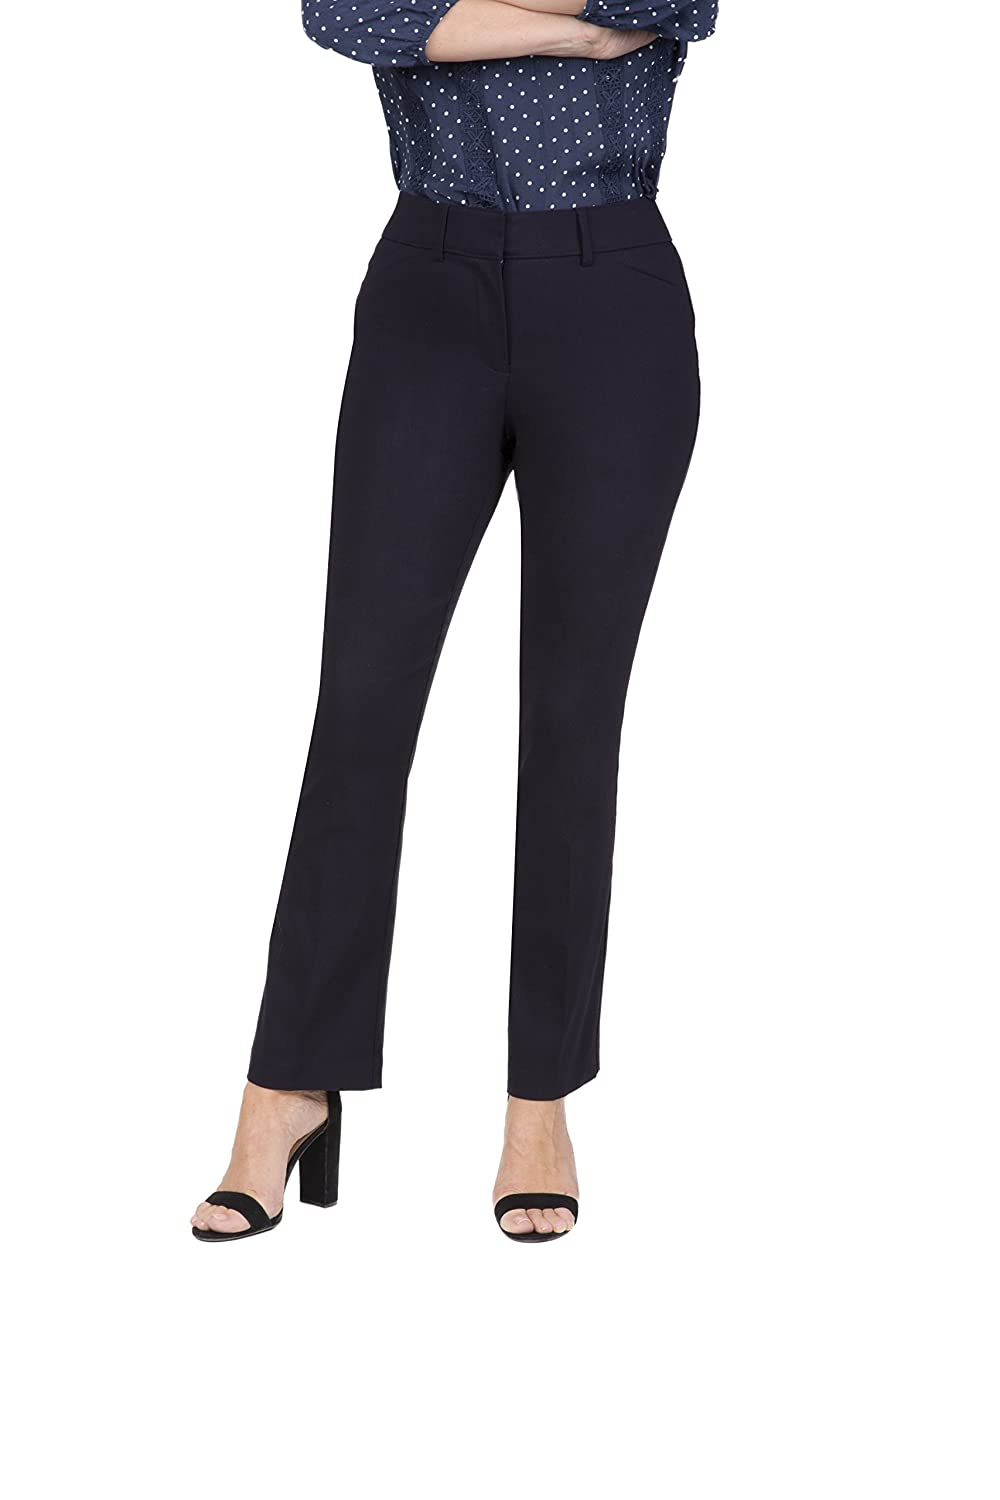 Fundamental Things Women's Pull On Comfort Slight Boot Cut Pant Tummy Control